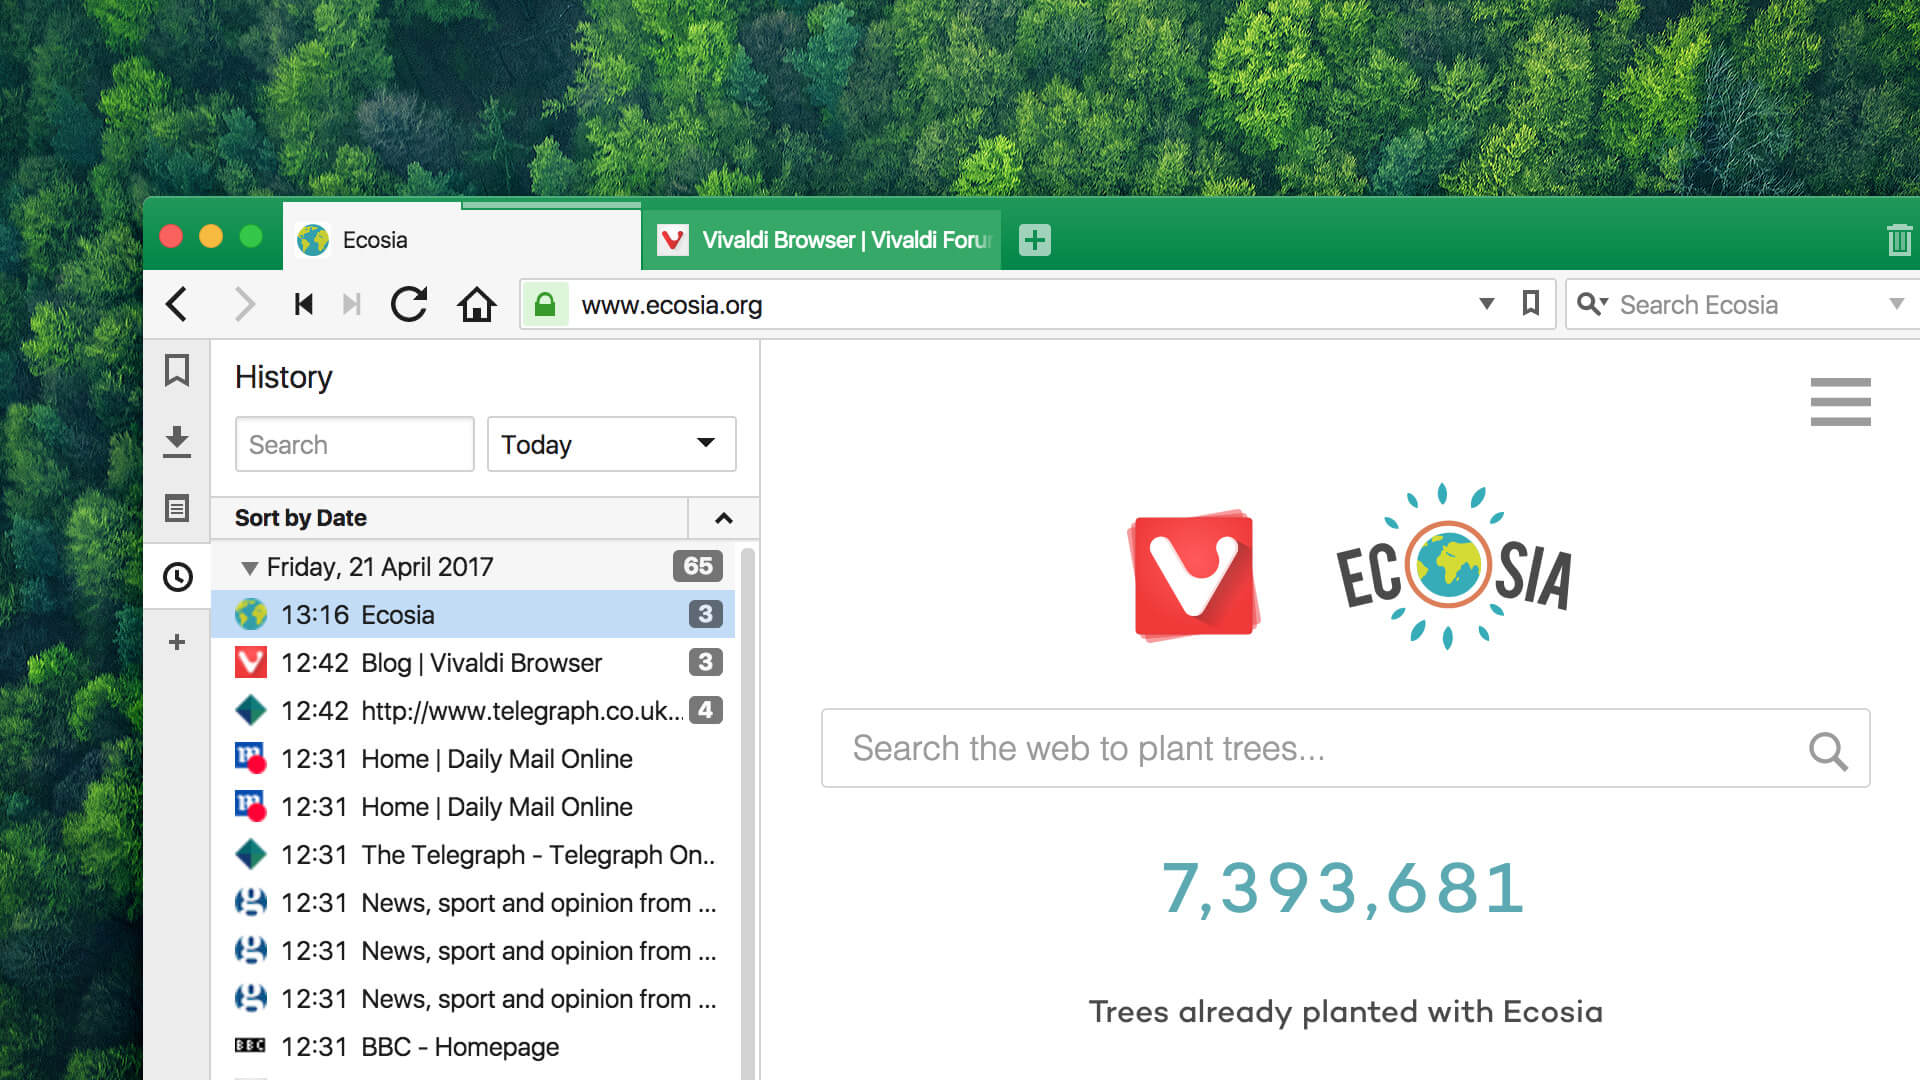 Ecosia in the Vivaldi Browser